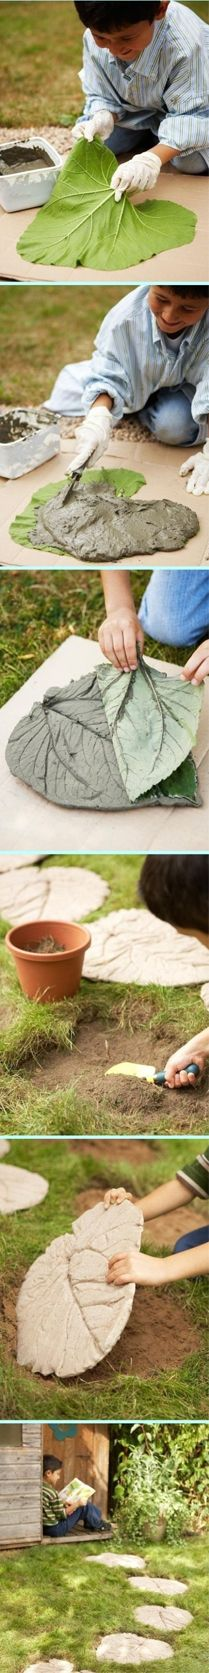 These homemade stepping stones are ingenious!